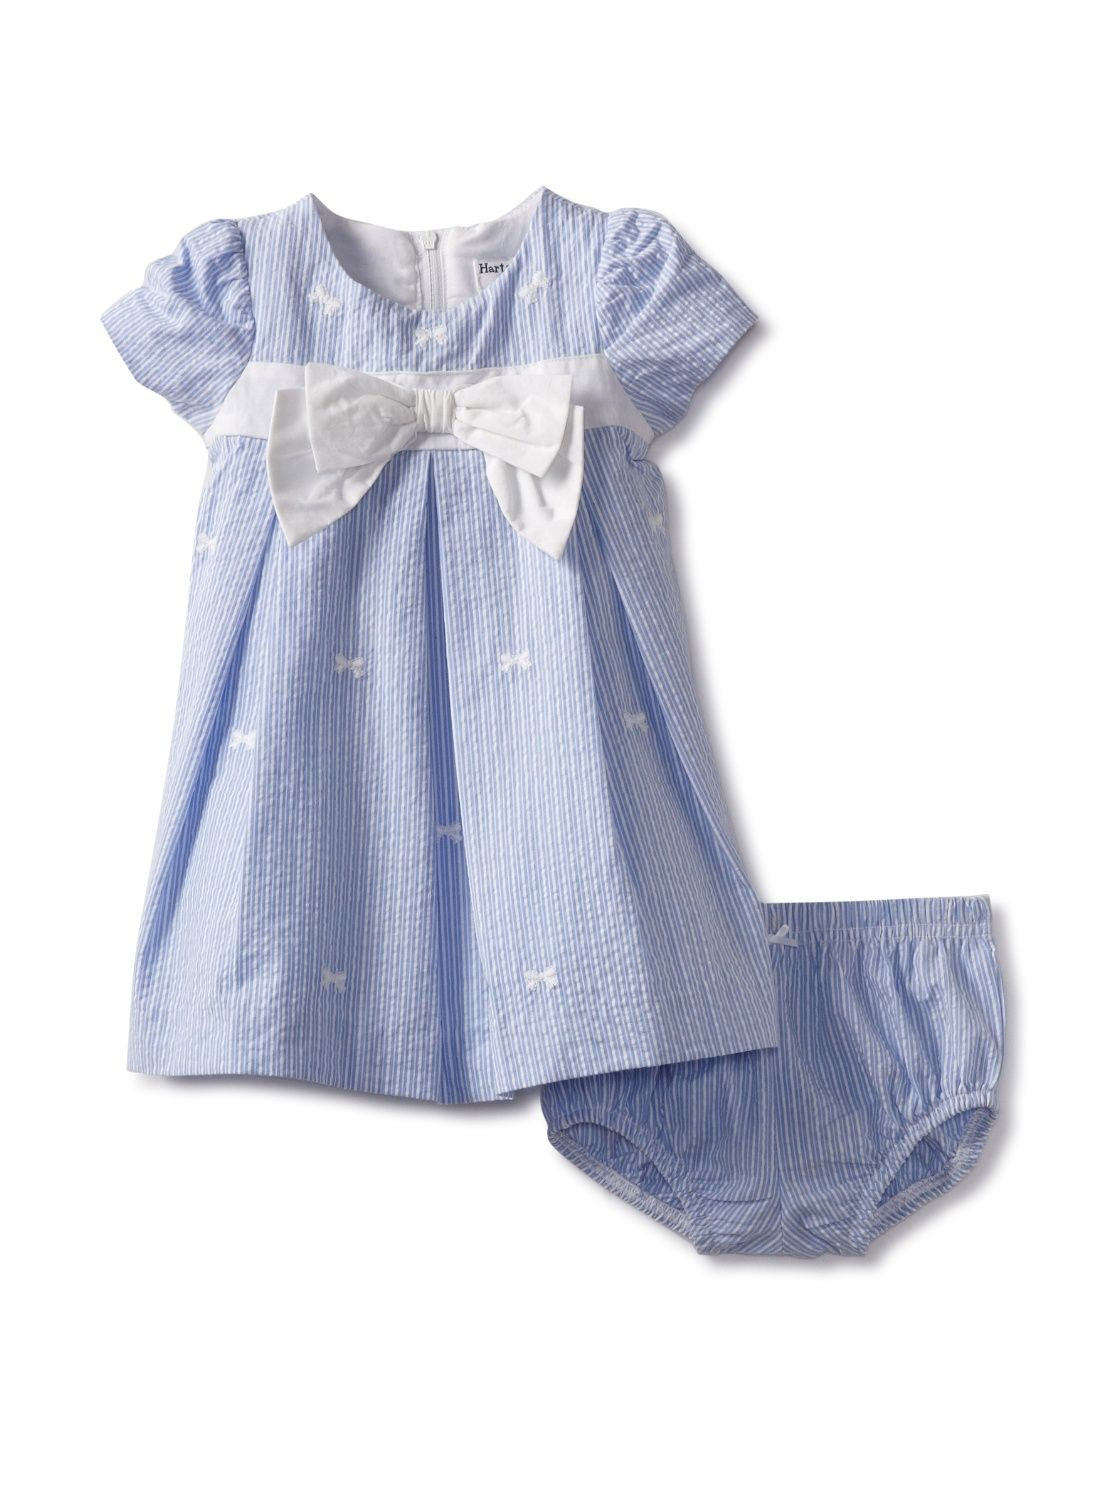 hartstrings baby clothing i this so miss